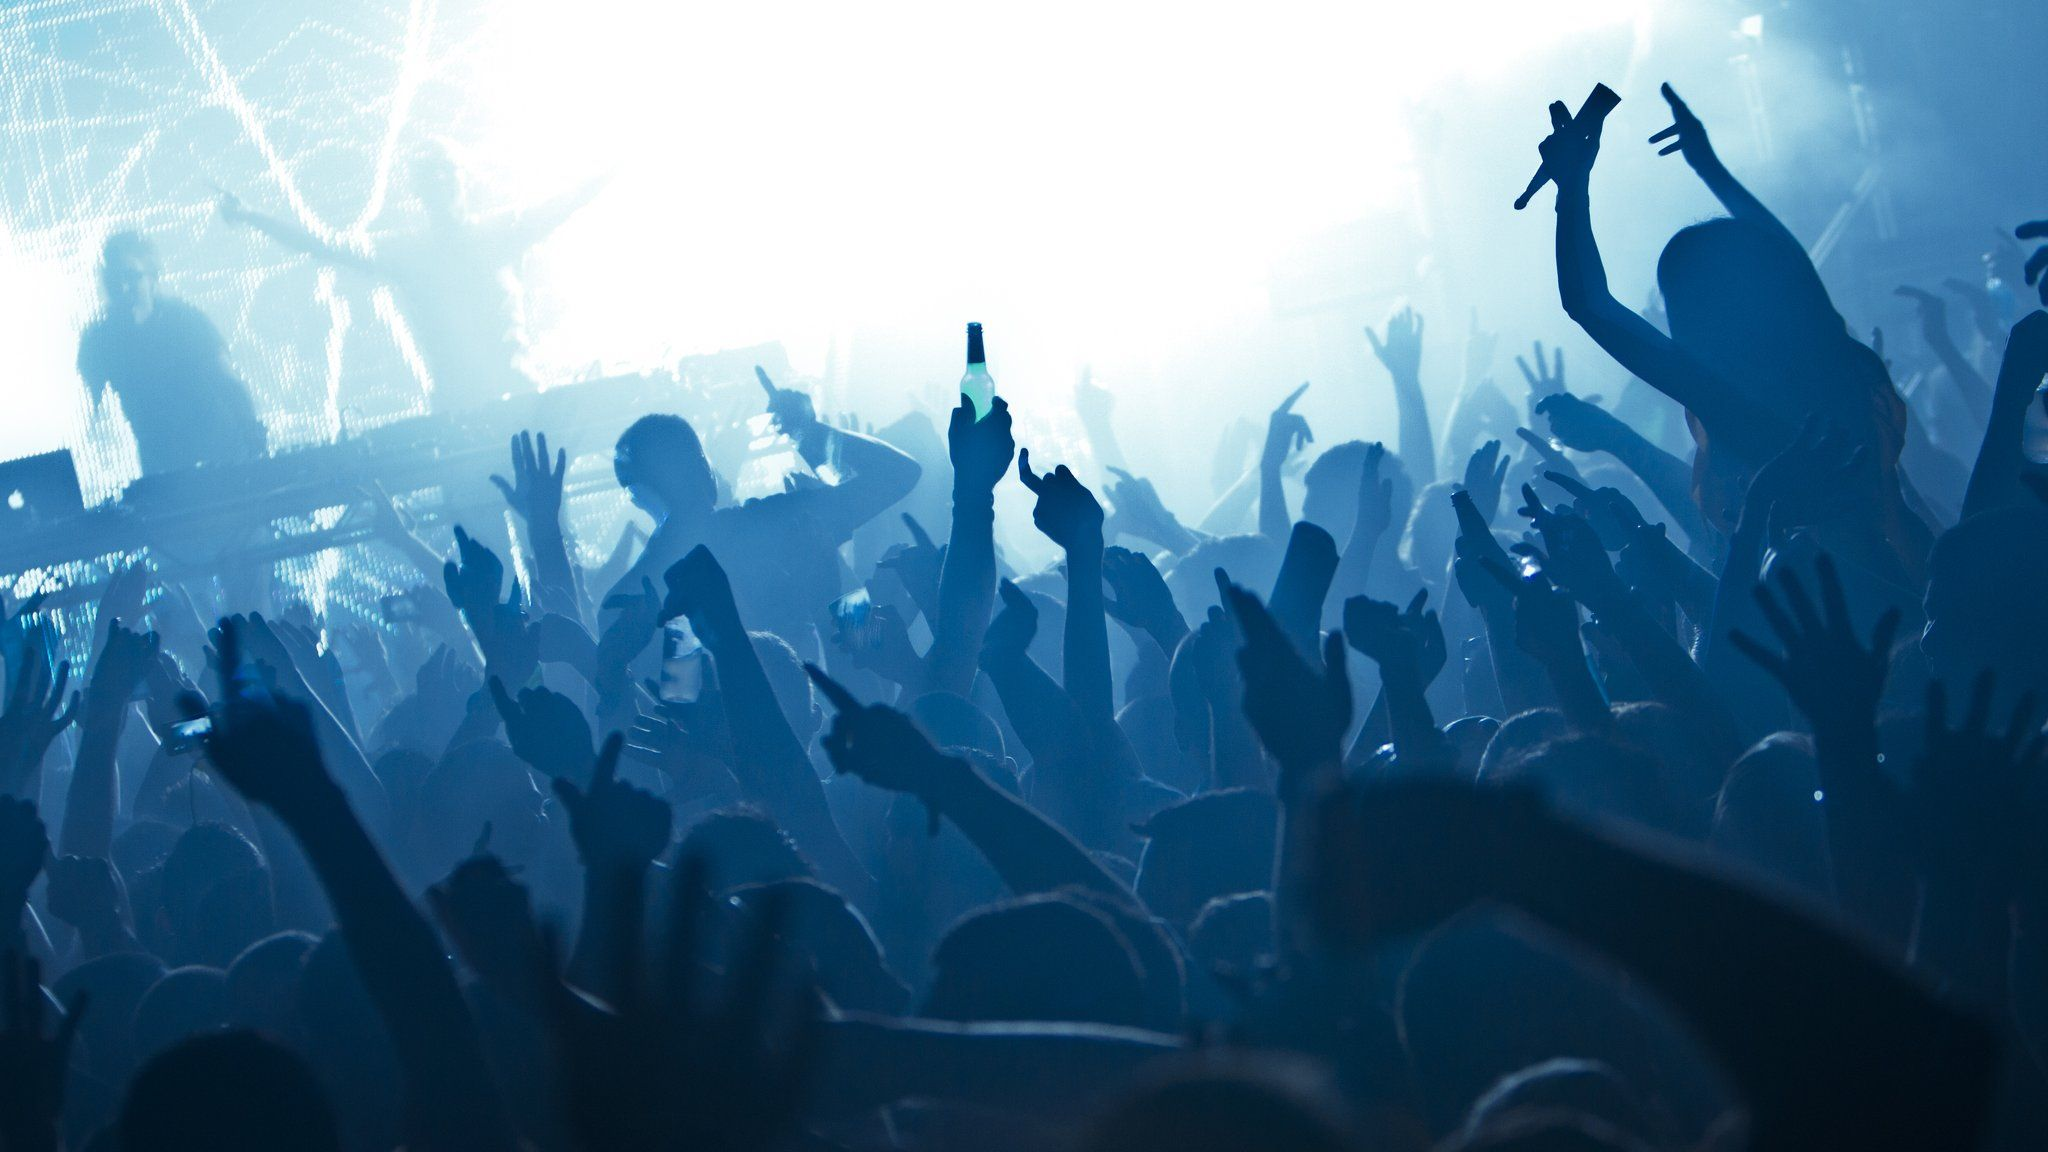 Stock image of clubbers